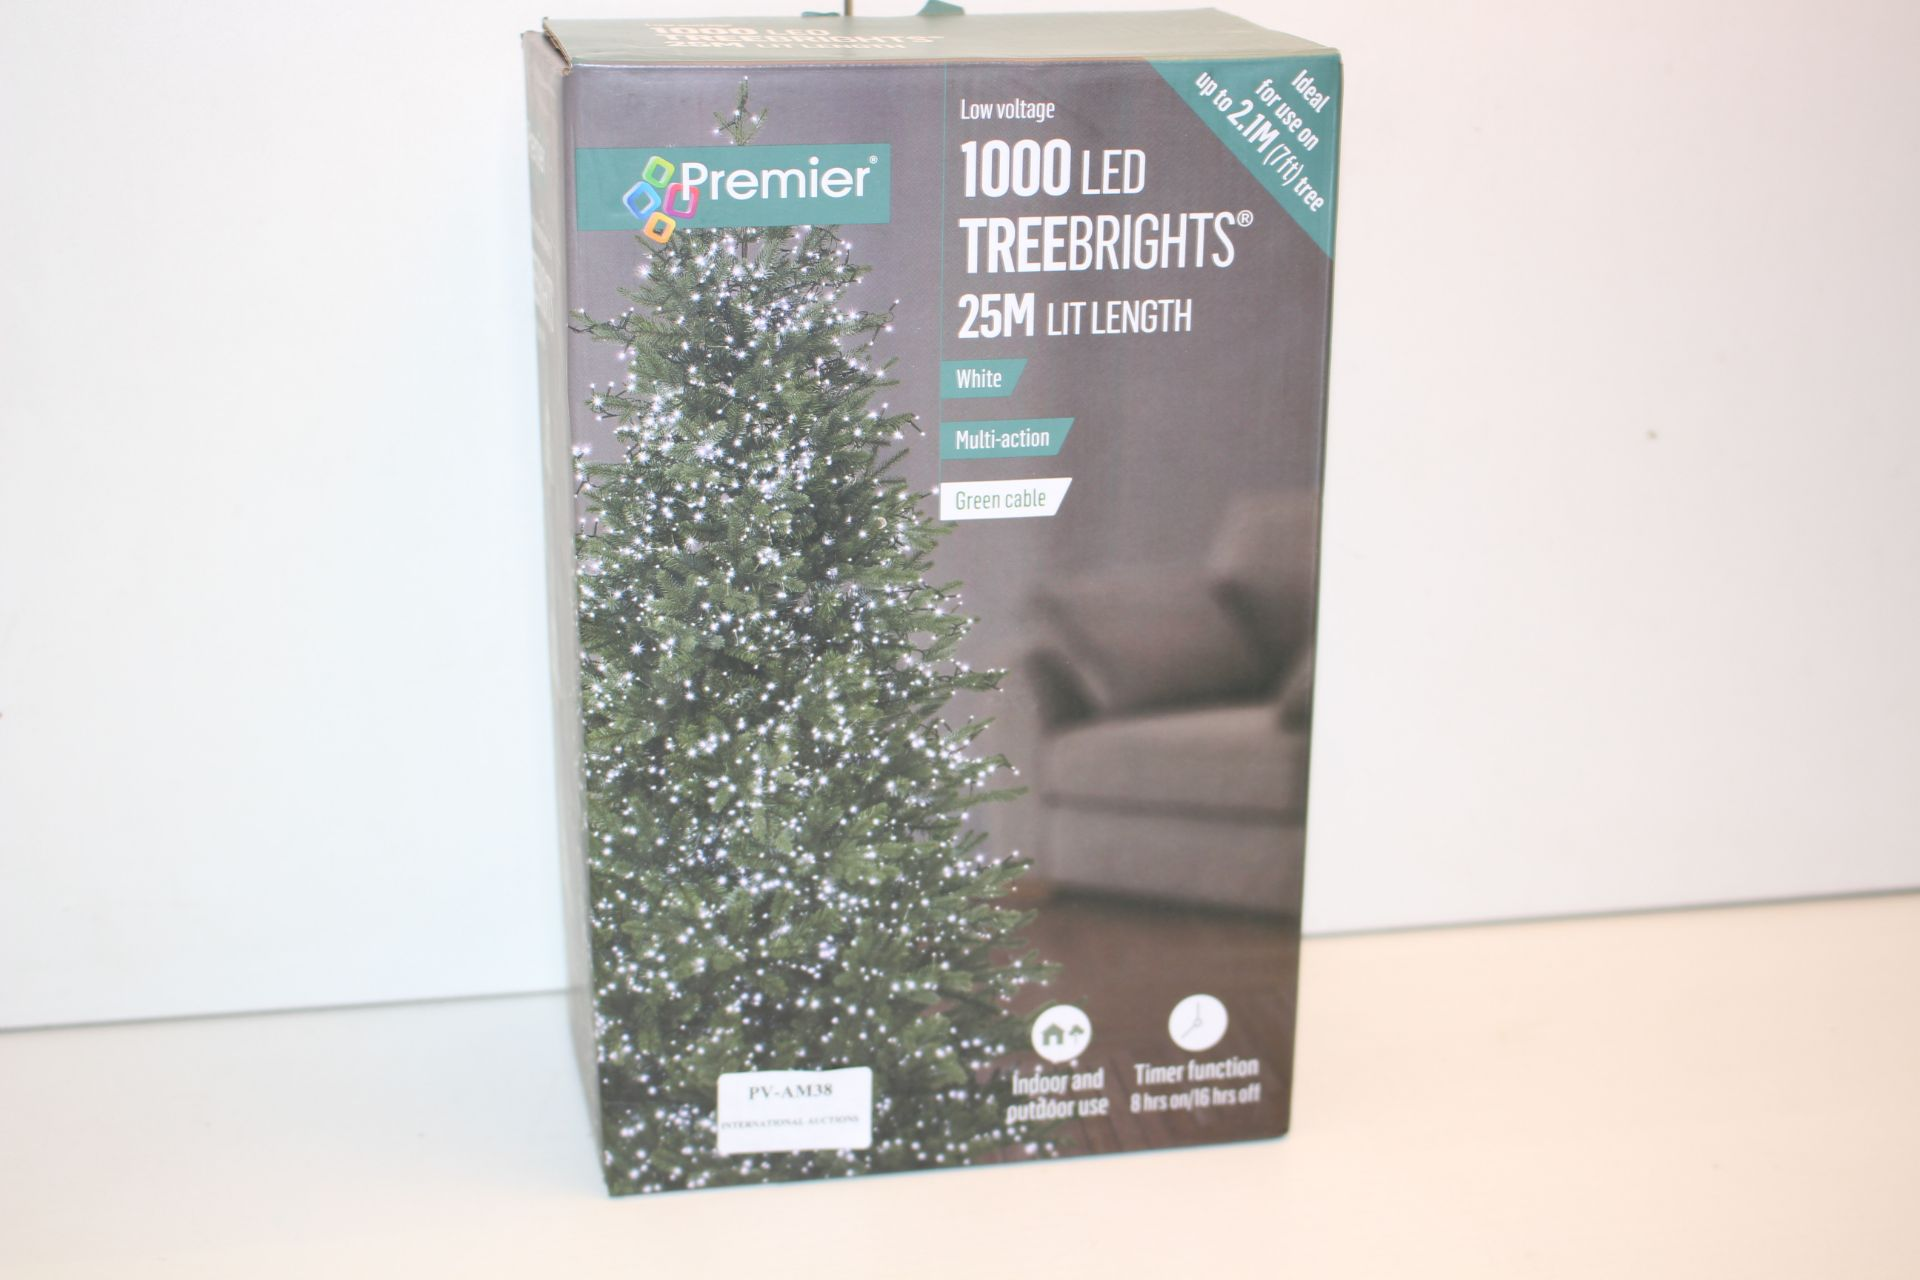 BOXED PREWMIEWR 1000 LED 25M LIGHTS Condition ReportAppraisal Available on Request- All Items are